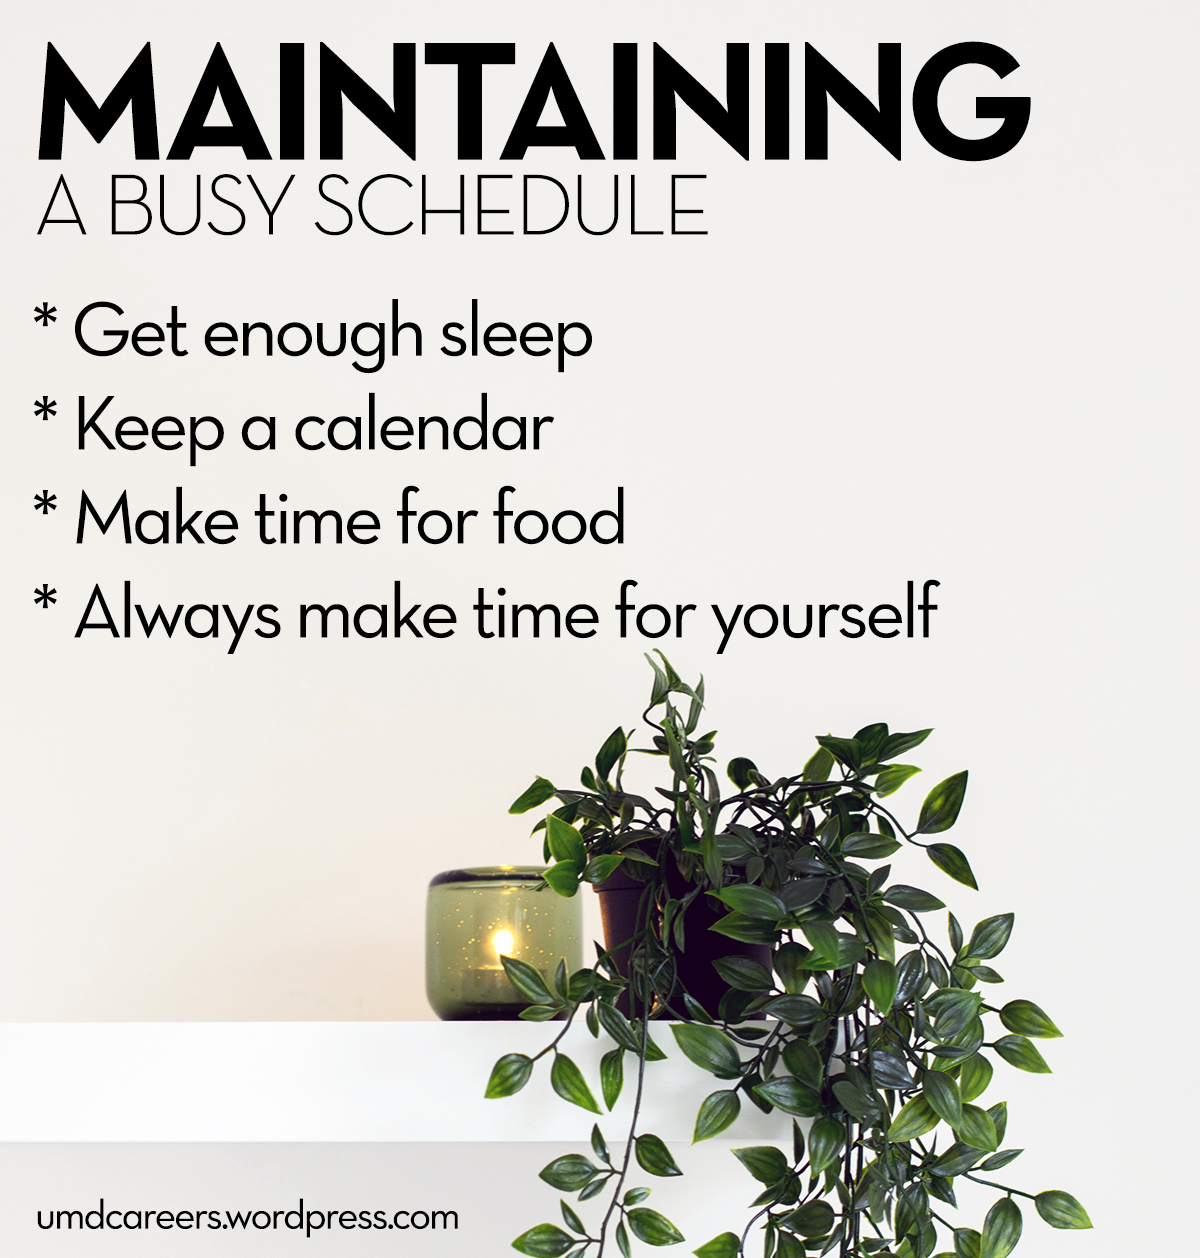 Tips for Maintaining a Busy Schedule